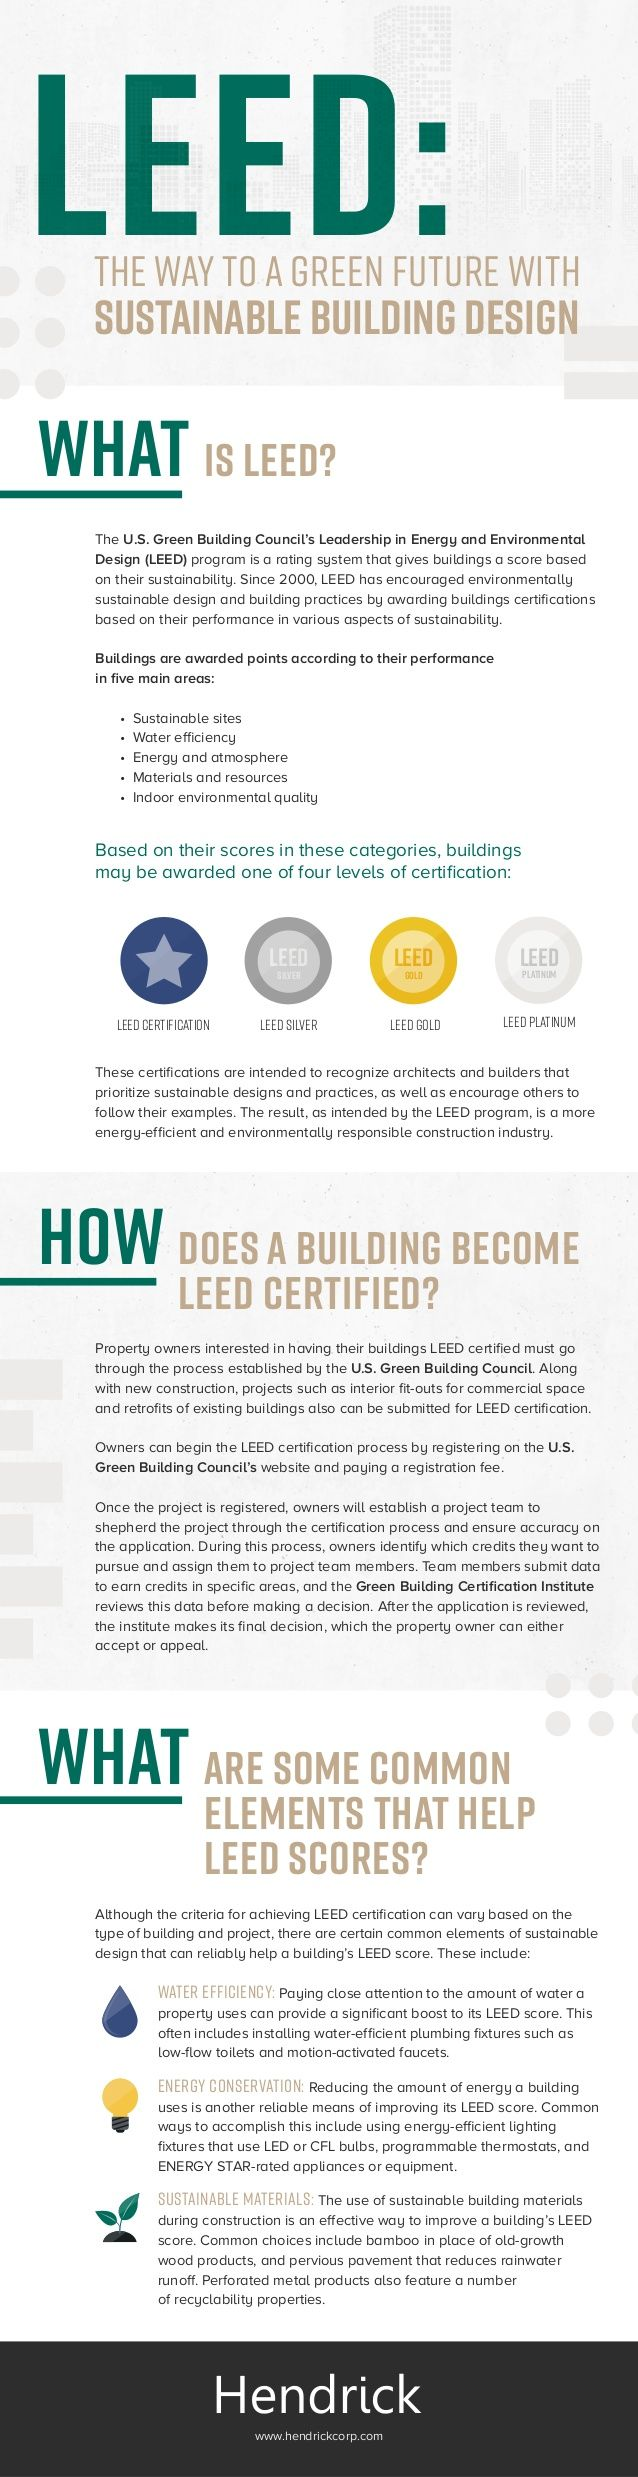 Leed The Way To A Green Future With Sustainable Building Design